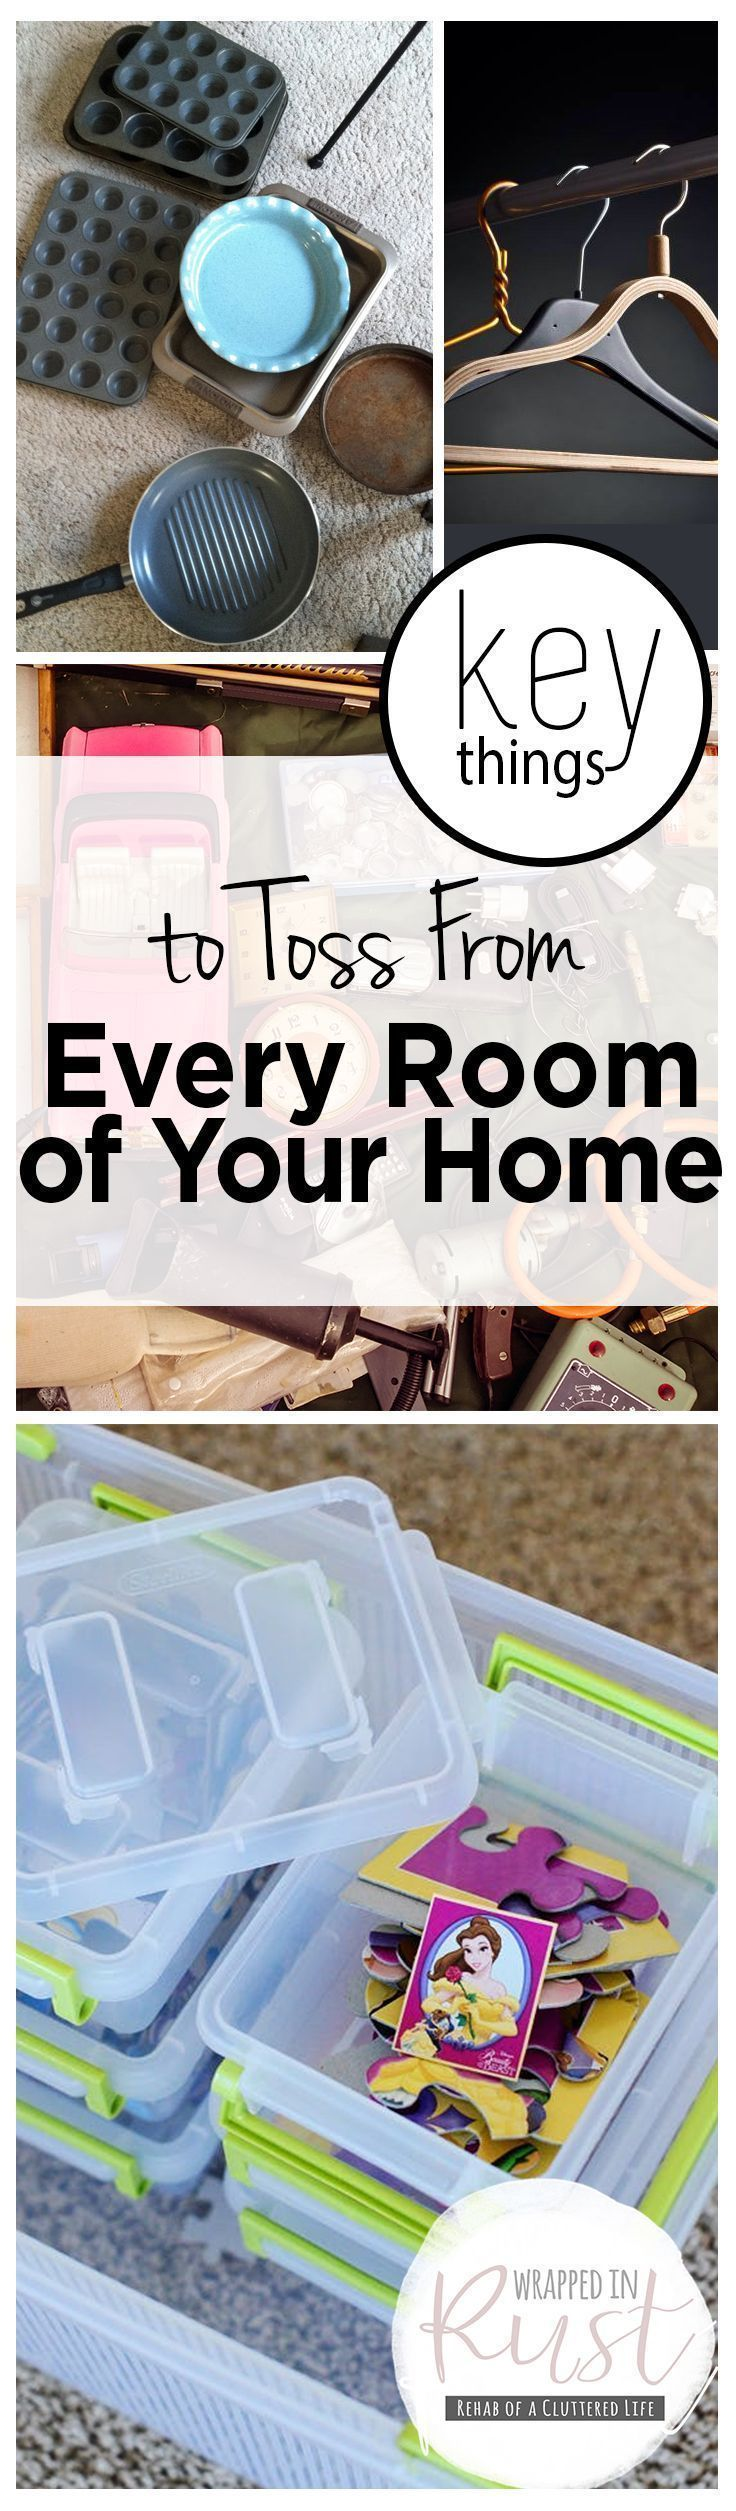 Key Things to Toss From Every Room of Your Home- Things to Get Rid of, Declutter Your Home, How to Declutter Your Home, Declutter Your Home By Getting Rid of These Items, Popular Pin #declutteryourhome #gettingridofclutter #tipstodeclutteryourhome